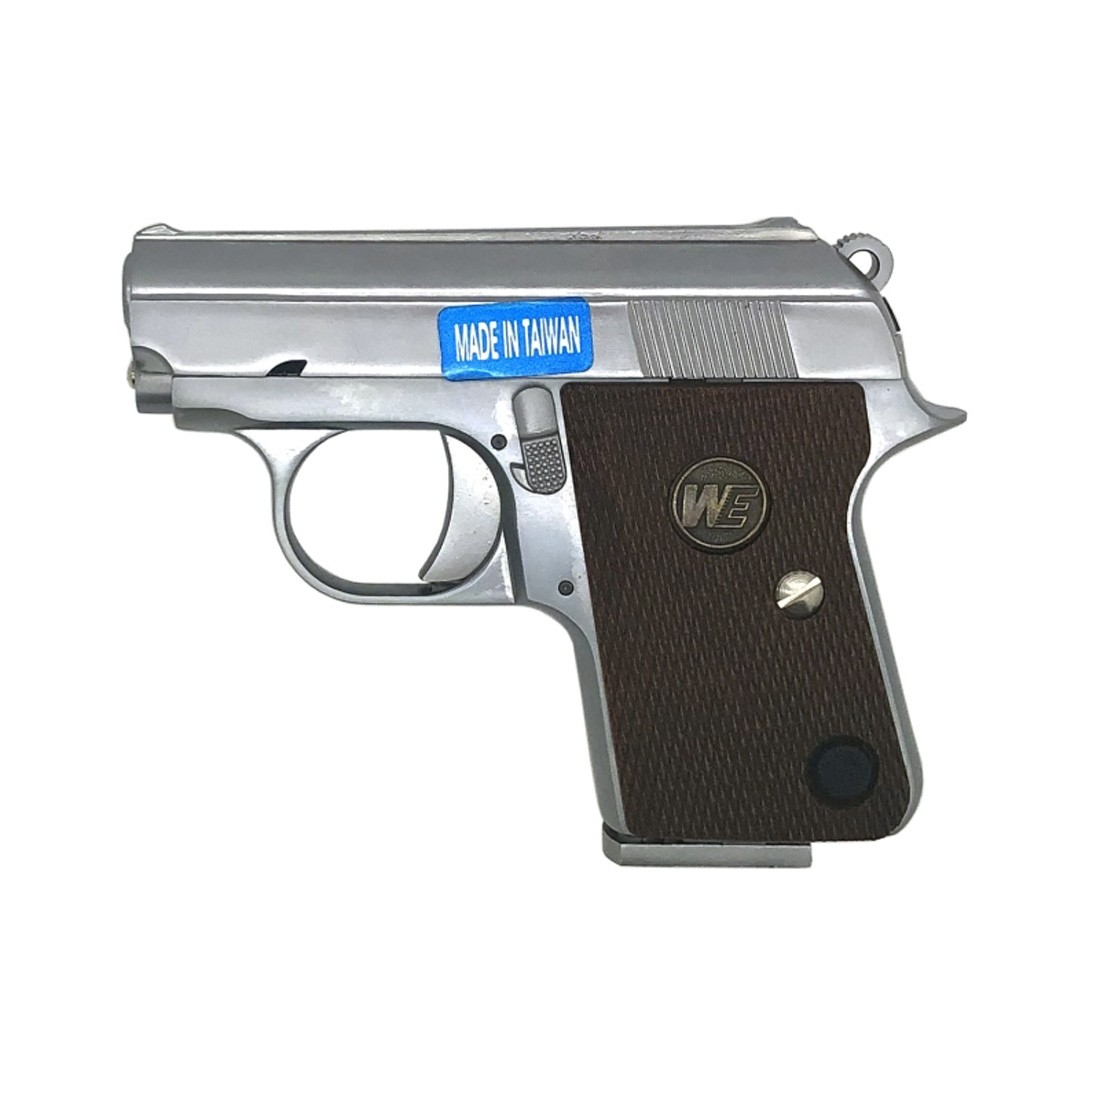 WE Colt 25 Auto CT25 Full Metal Gas Blowback Airsoft Pistol - Silver